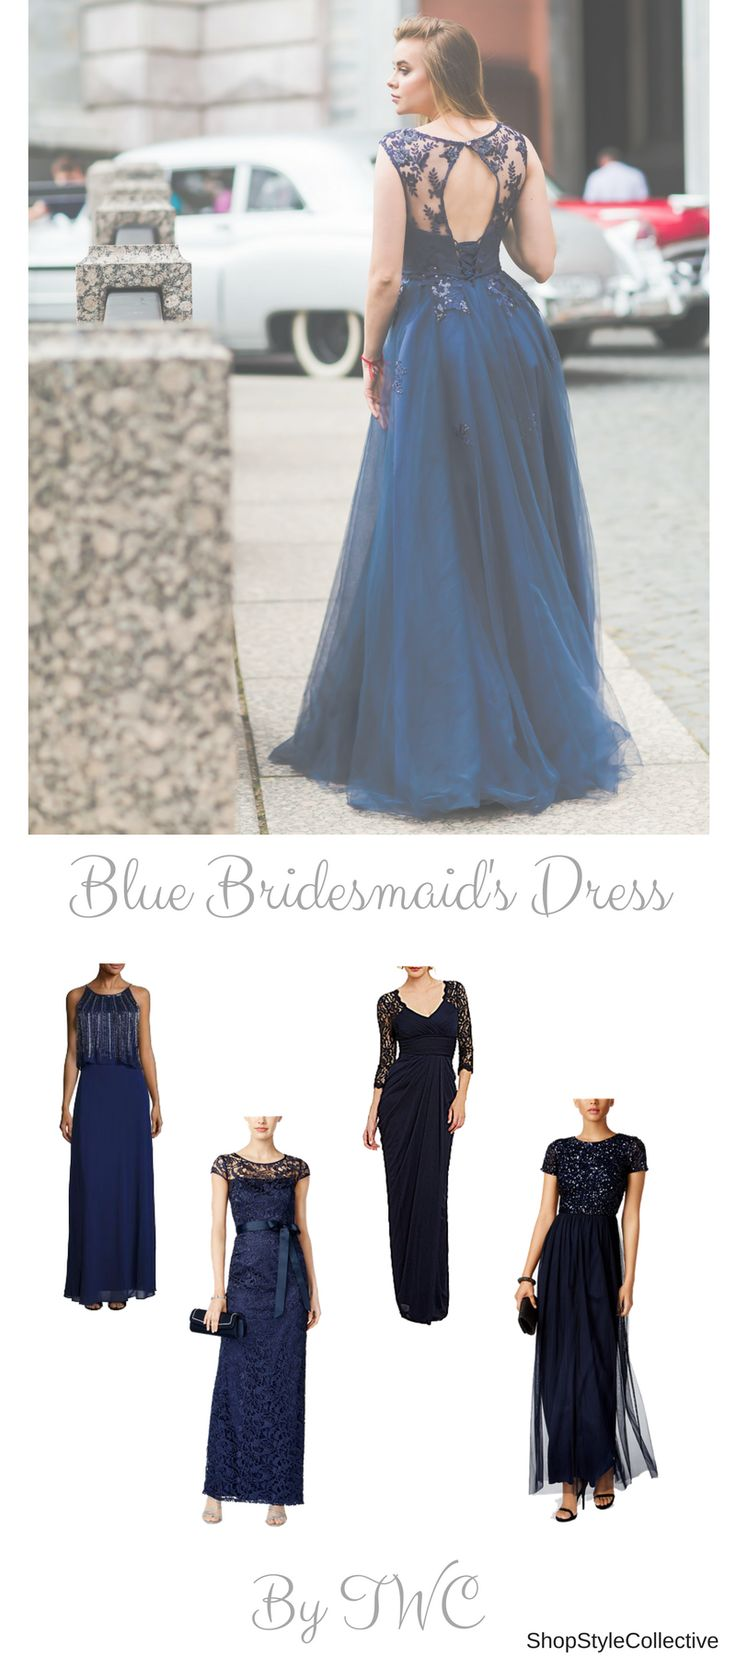 TheBeautiful blue bridesmaid dresses! Navy blue, royal blue, powder blue and all types of blue have been in season since 2014. And it is a trend that is here to stay... Bridesmaids need to feel important too, and you should dress them well!